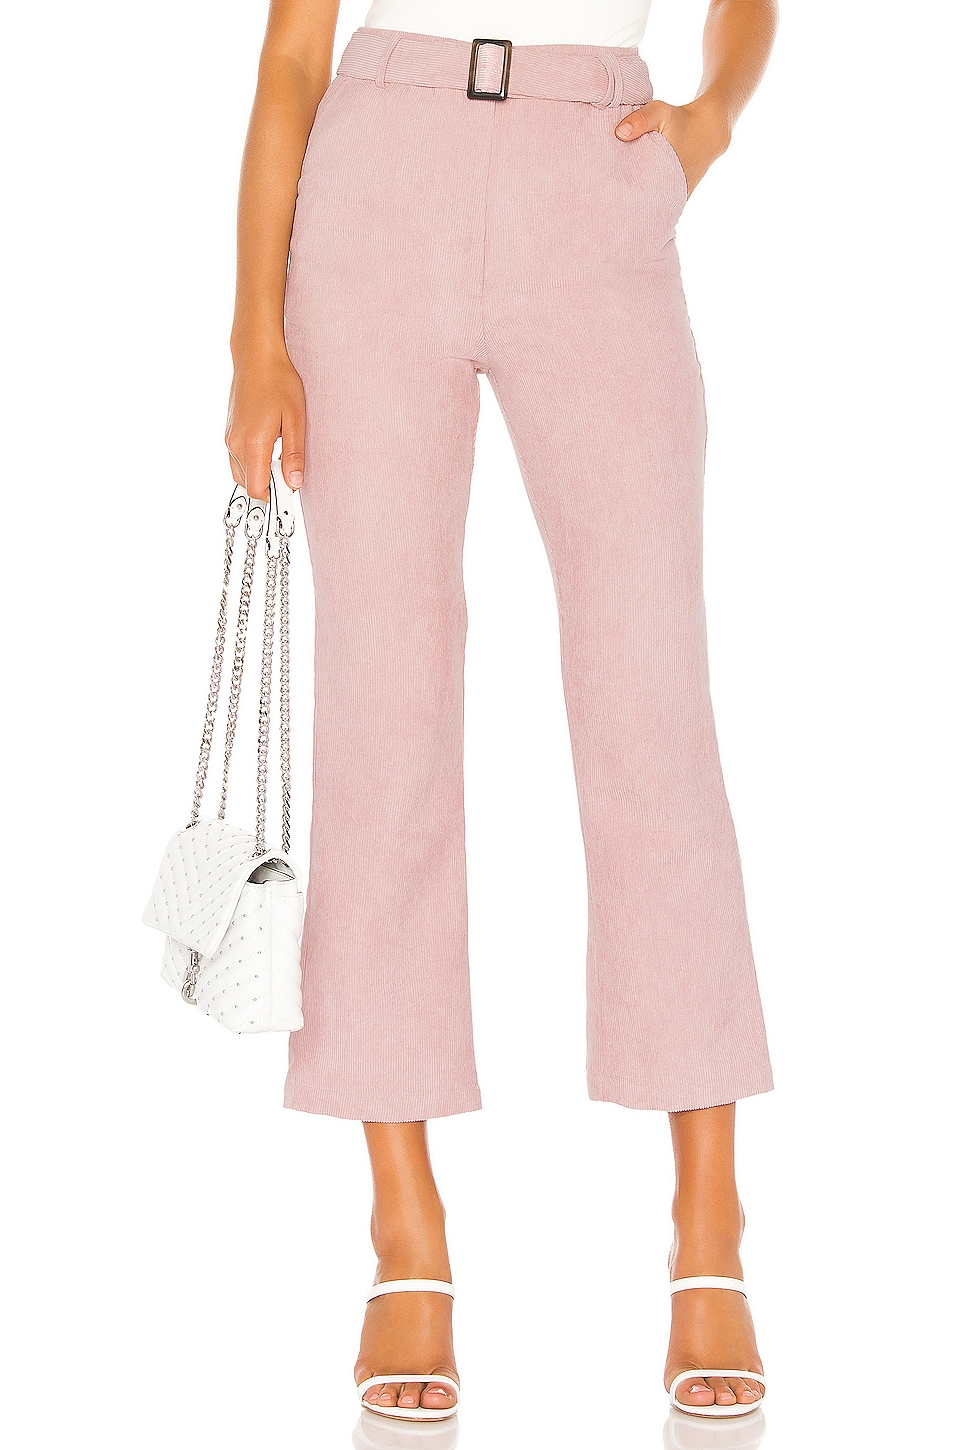 Lovers + Friends Joanie Pants in Lilac